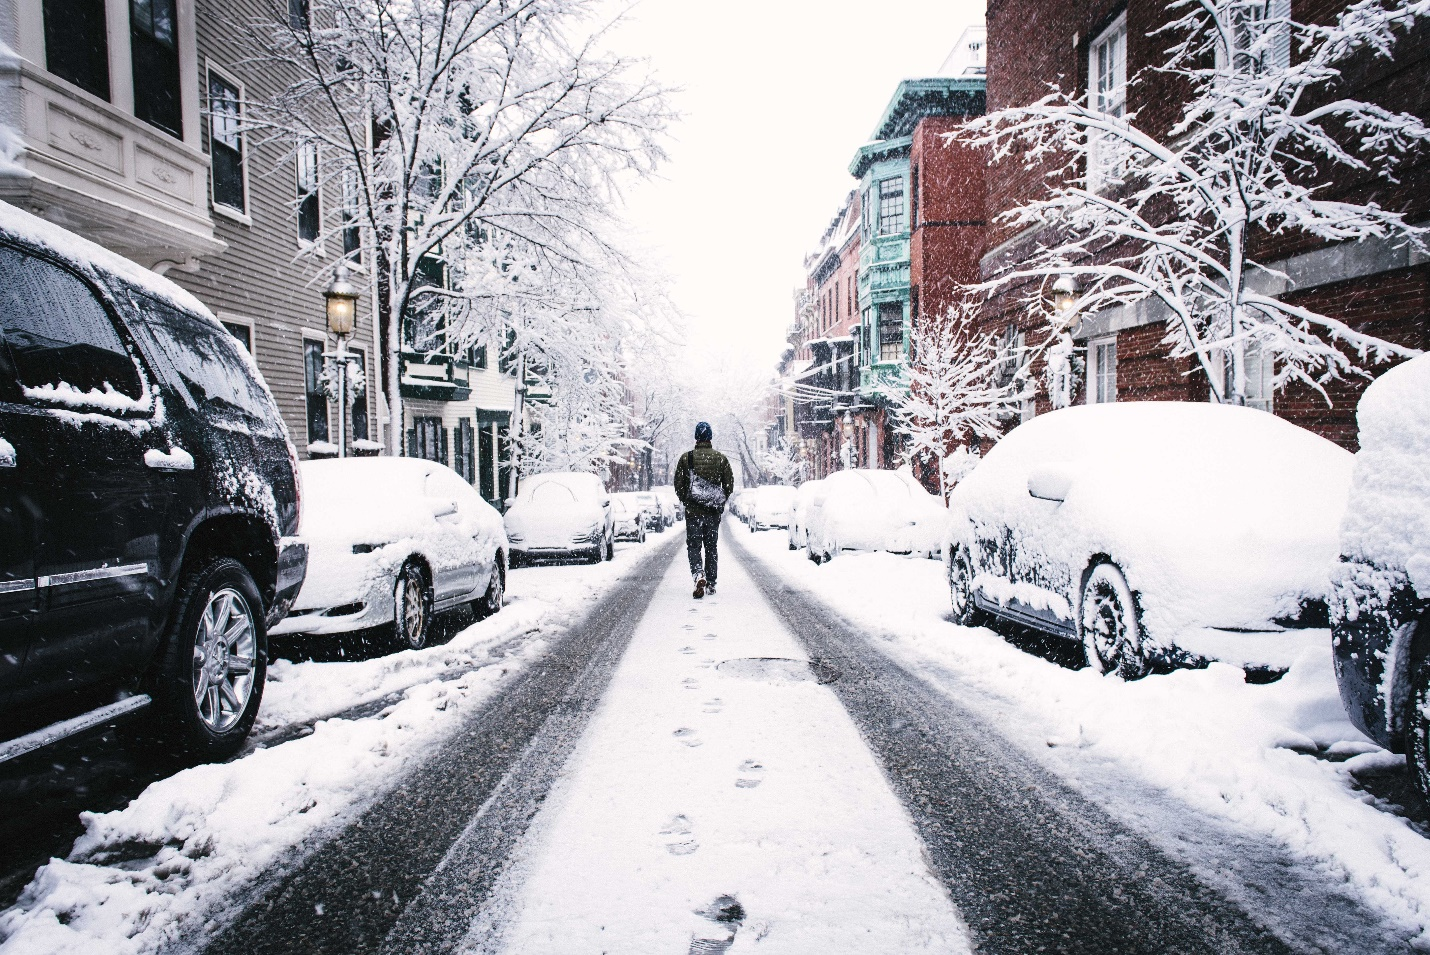 Suing Government for Unplowed Roads in Fayetteville, Arkansas